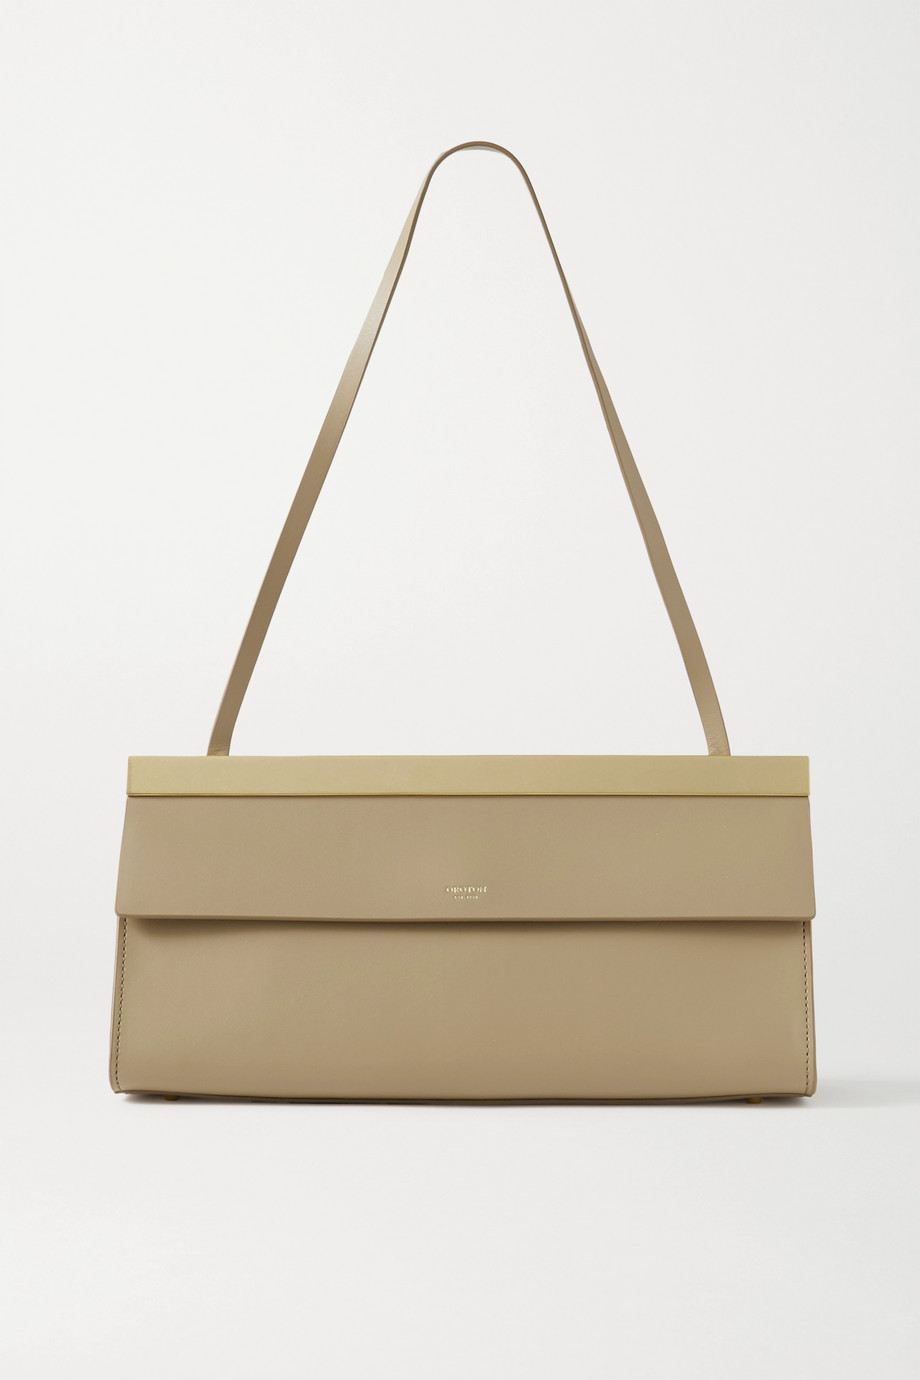 Oroton Jerome Baguette leather shoulder bag